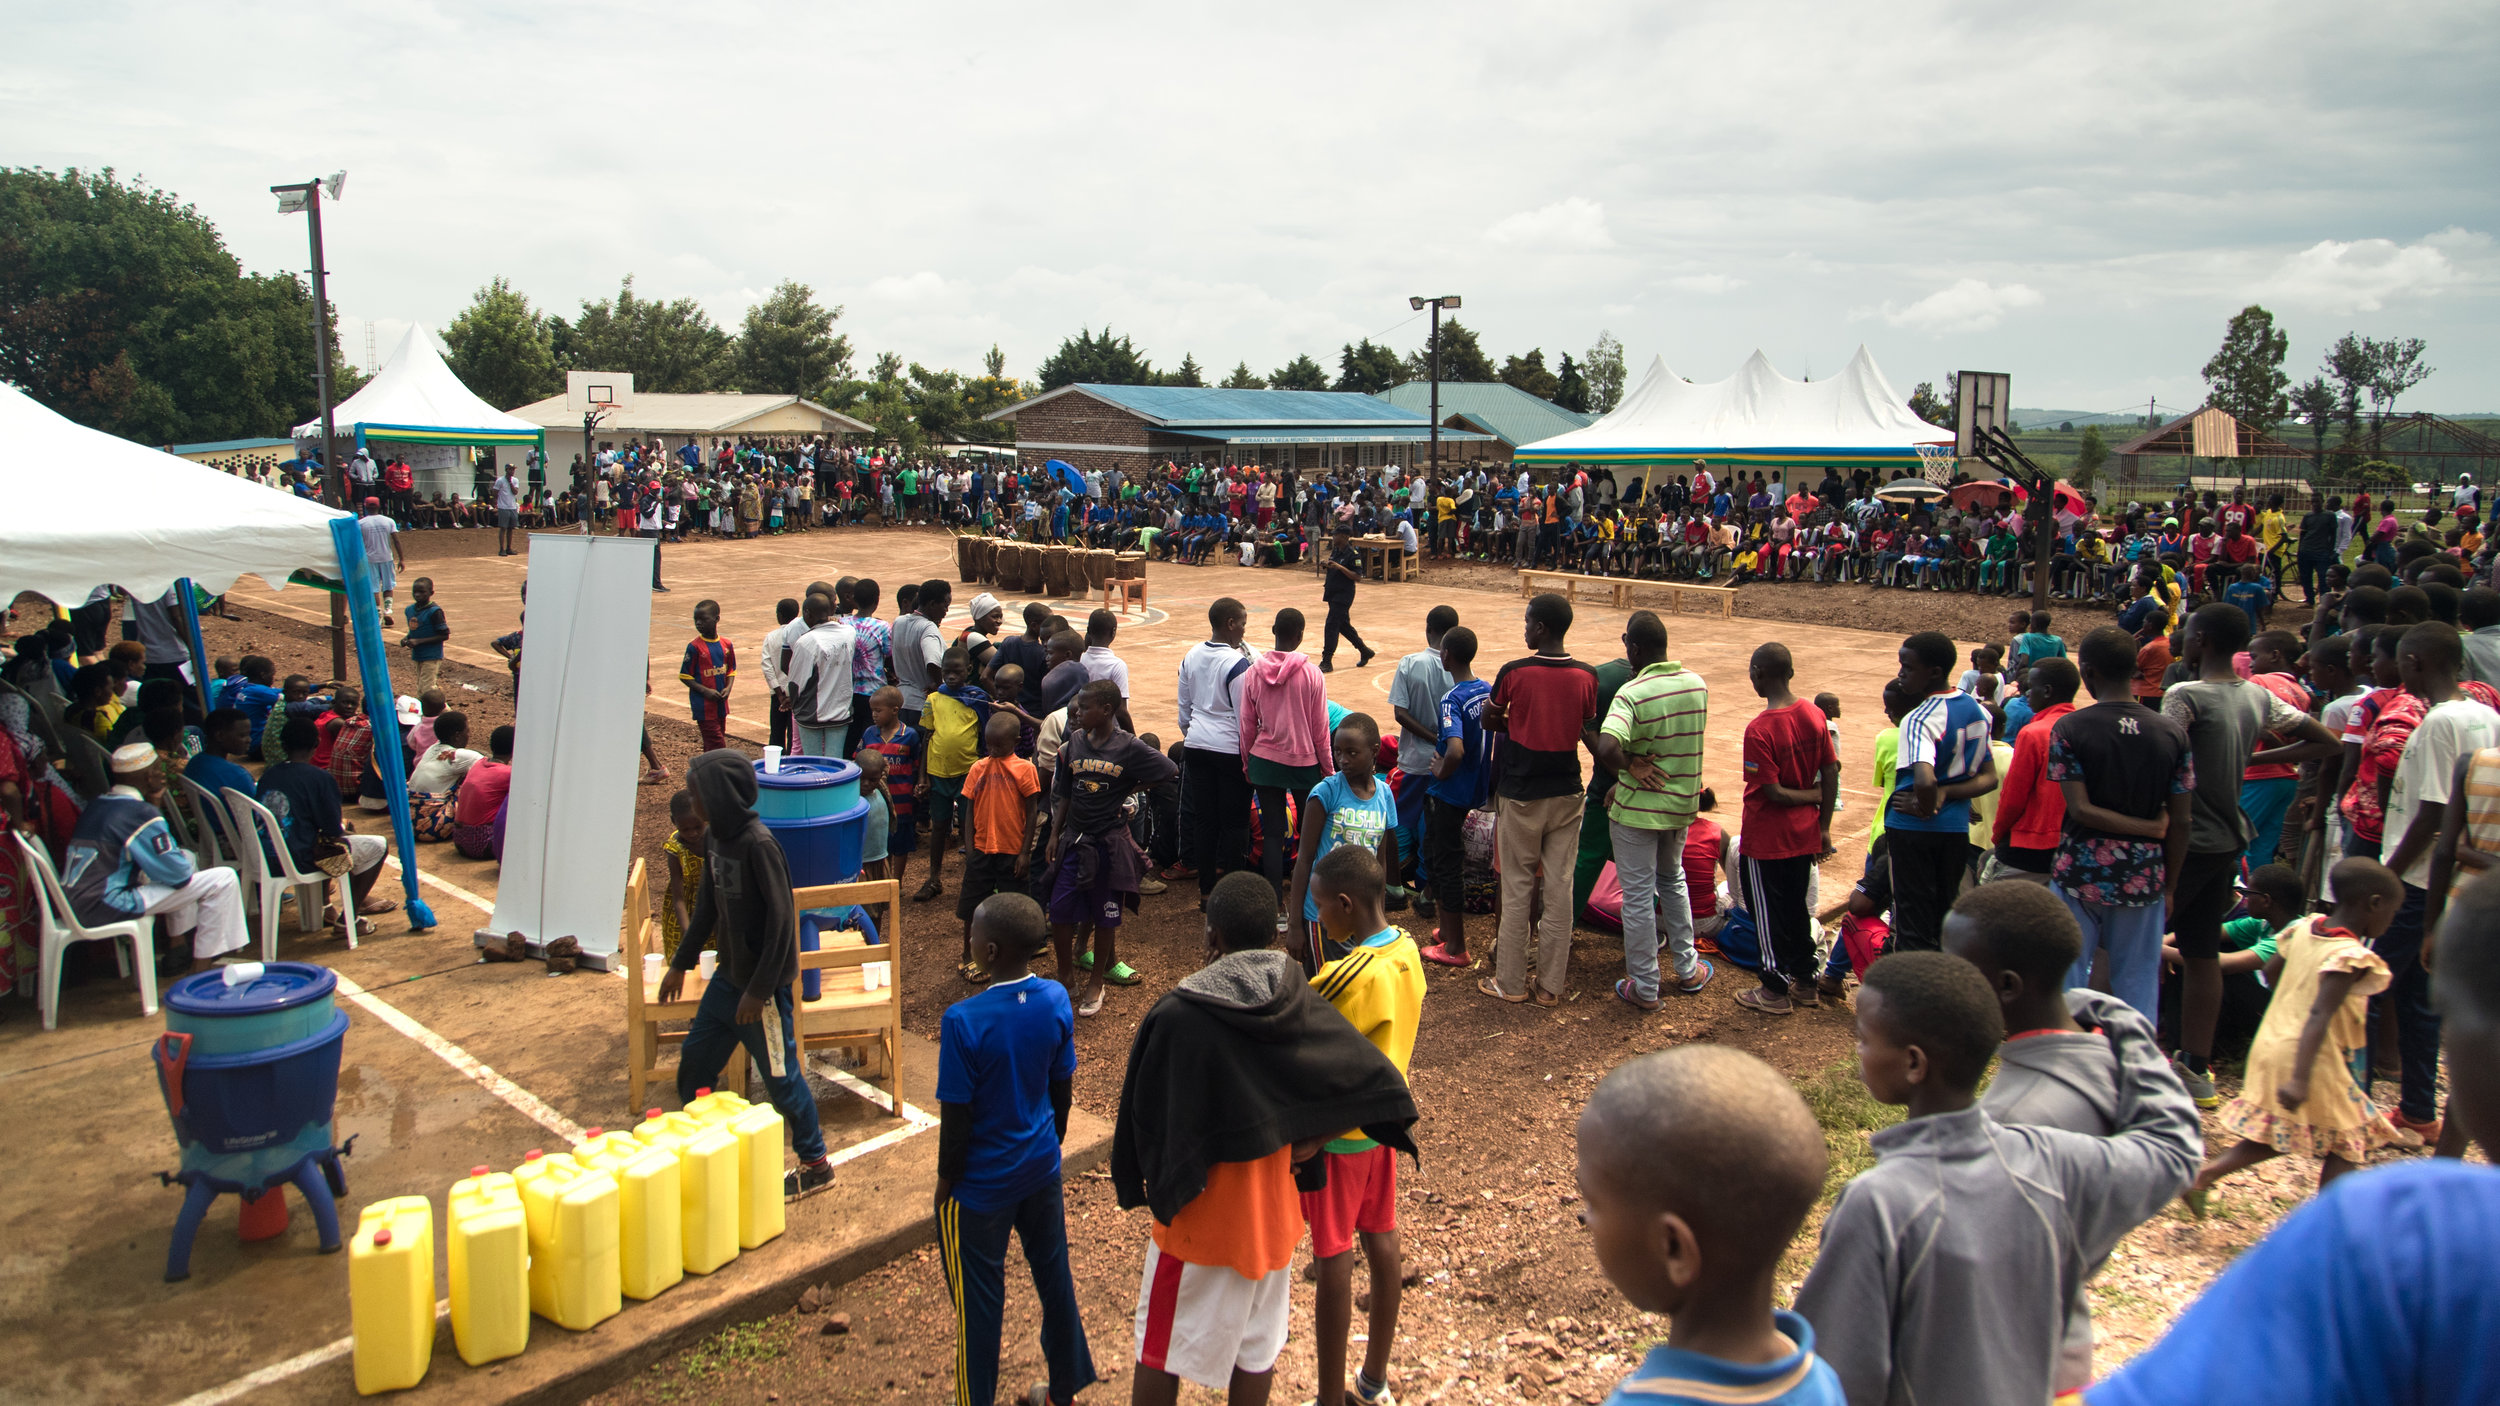 The basketball tournament attracted over 2k people. Next to the court Shooting Touch and local health administrators provided free health screenings for HIV, diabetes and Breast cancer.